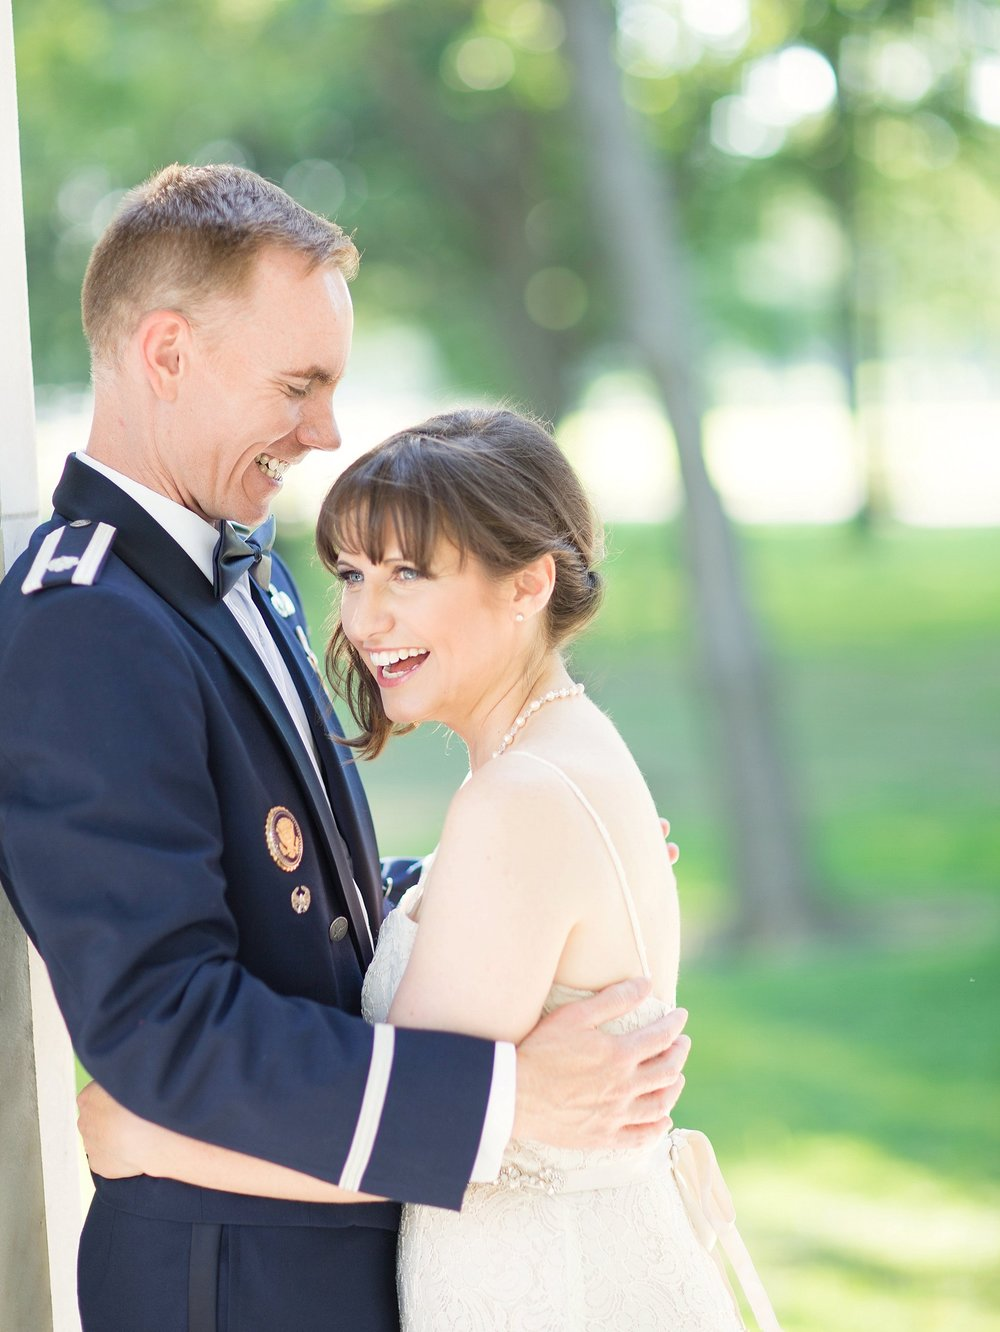 wedding photographers with best reviews washington DC